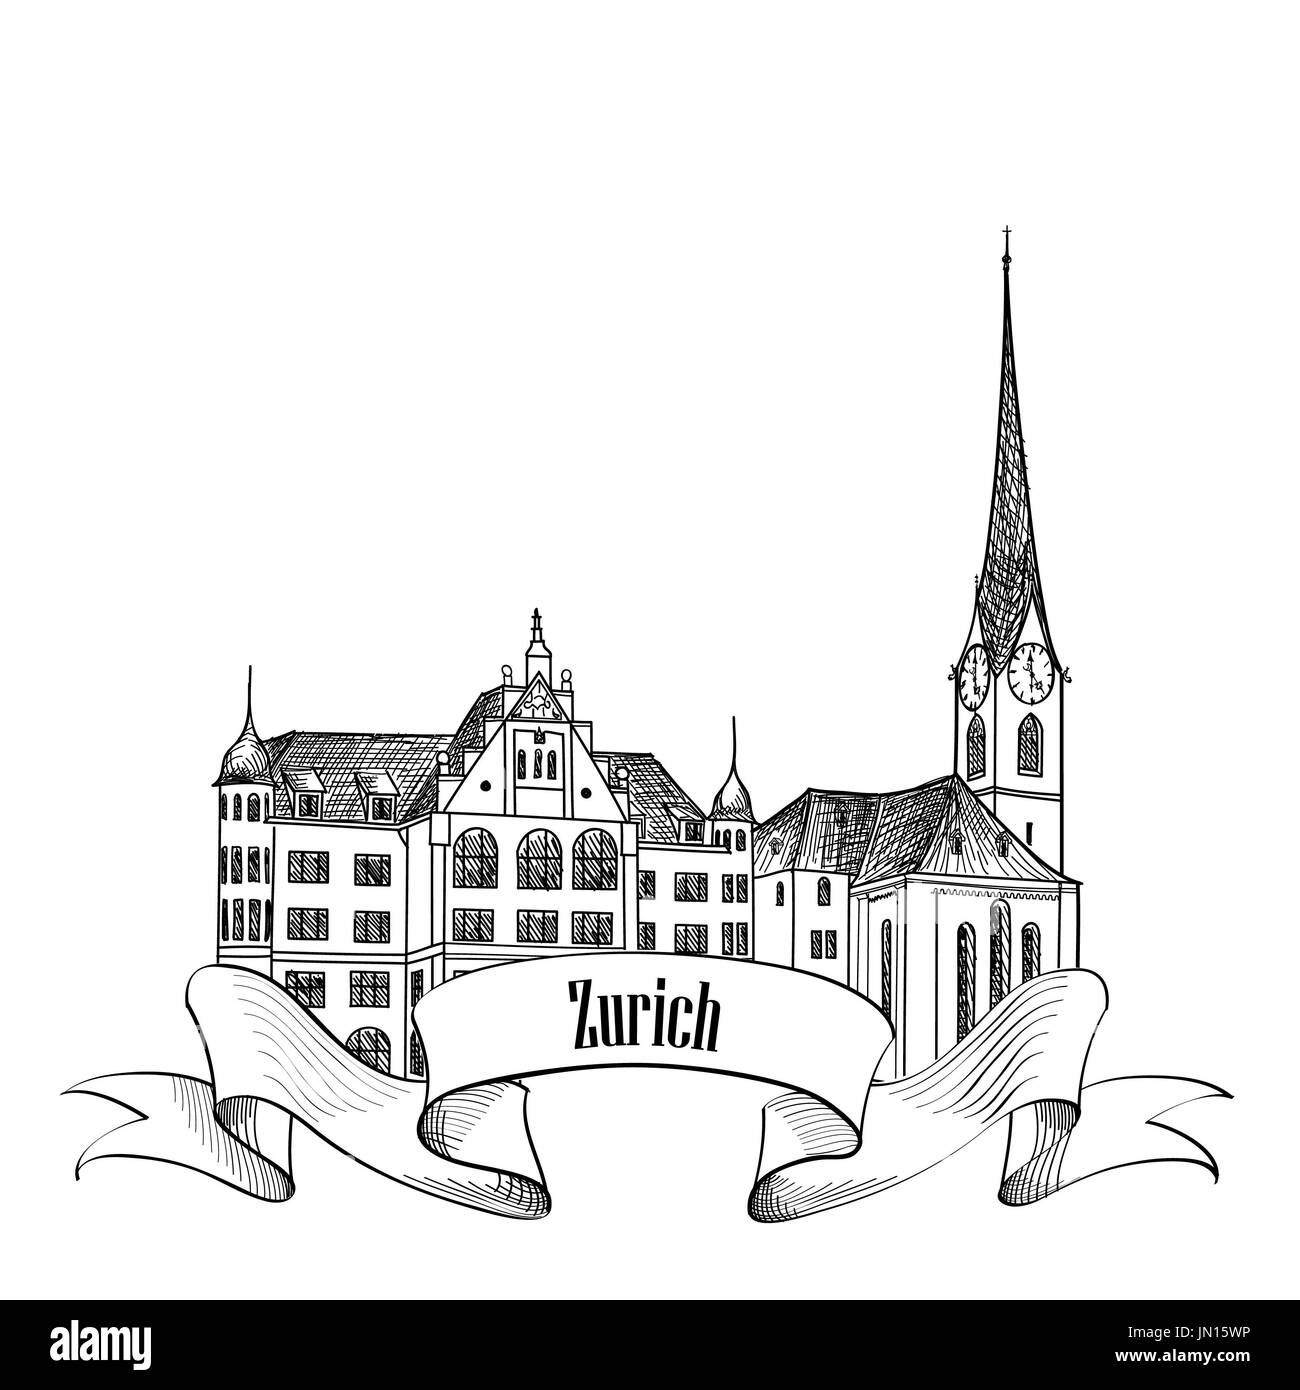 Zurich. City landmark label. Symbol of the capital of Switzerland. - Stock Image